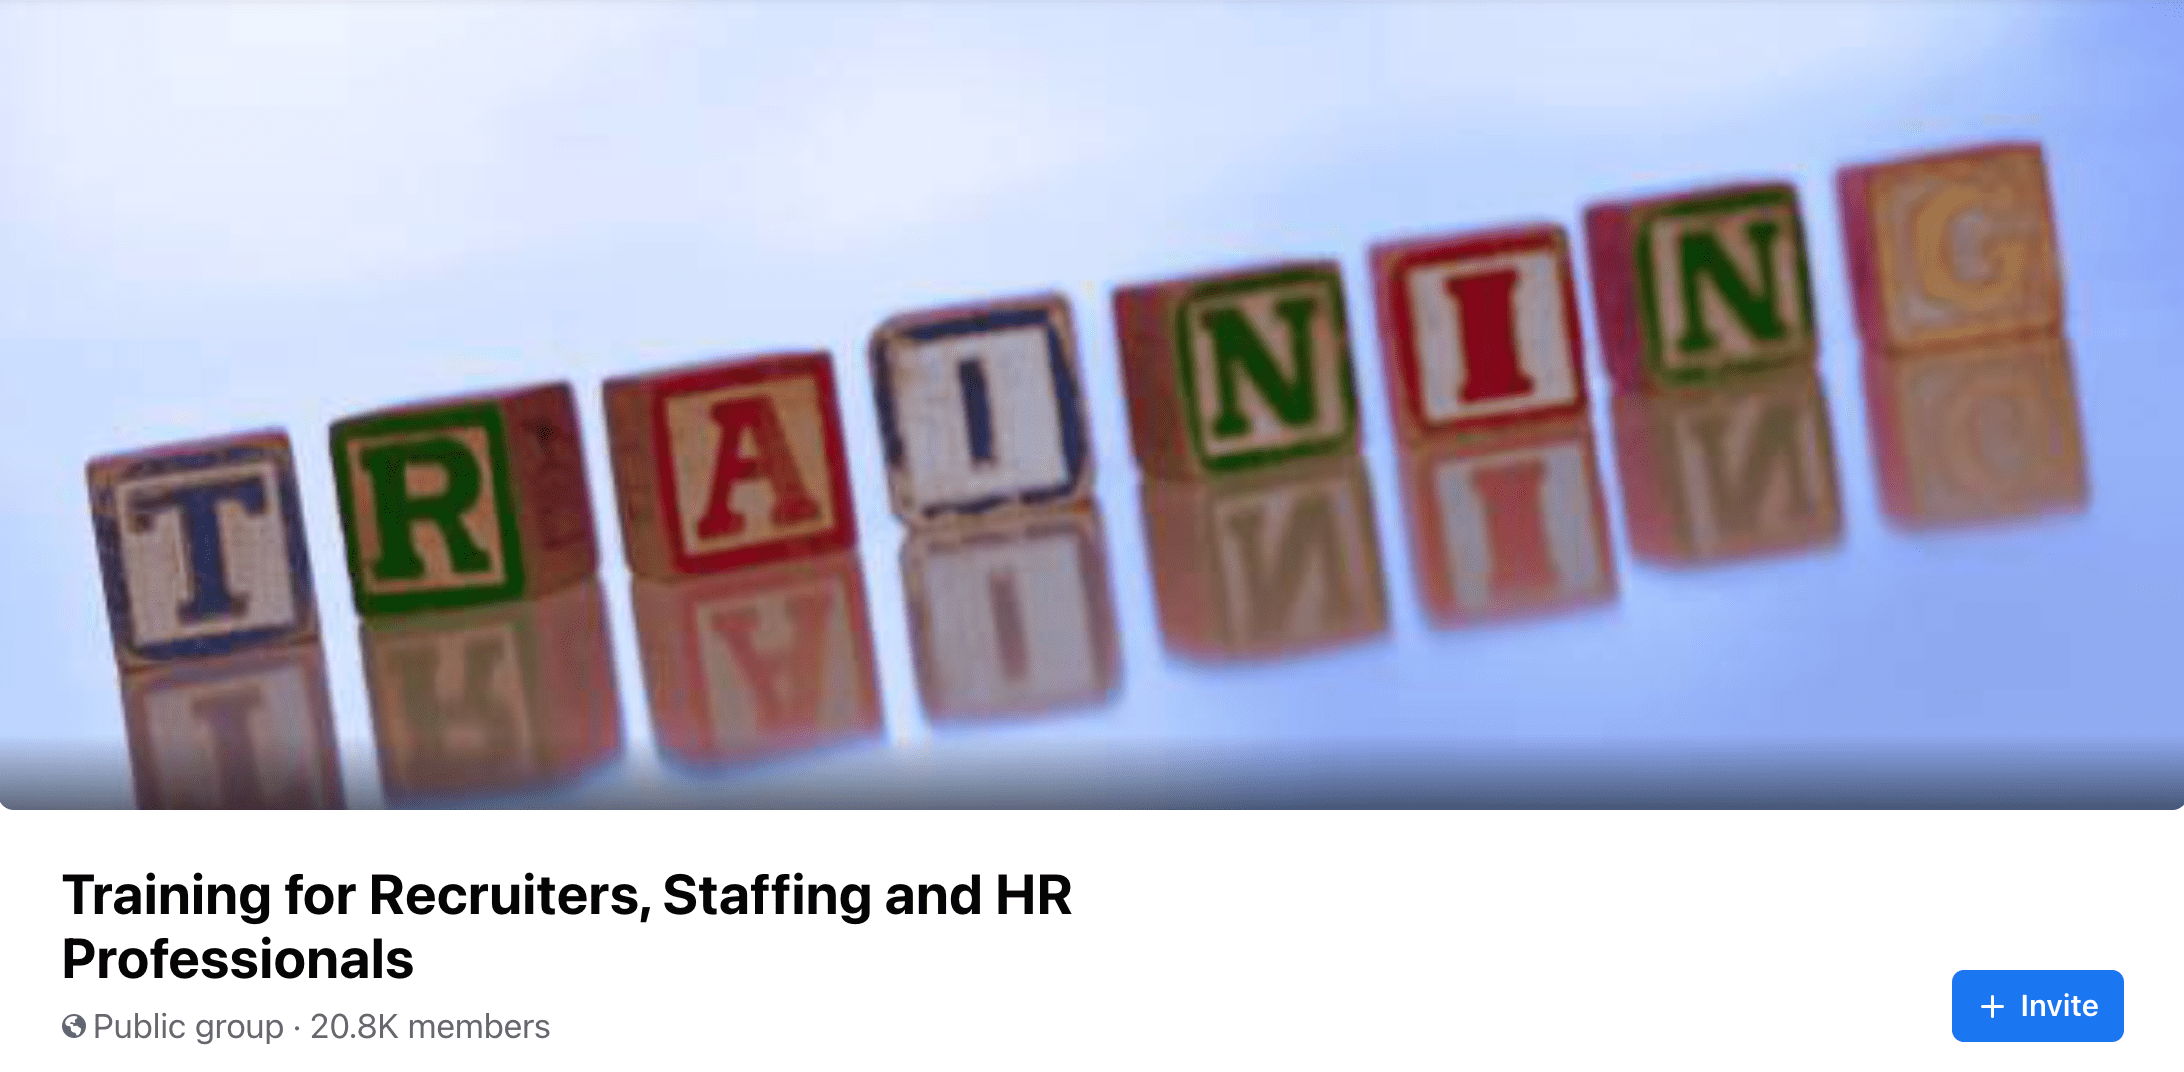 Grove HR - HR Facebook group - Training for Recruiters-min